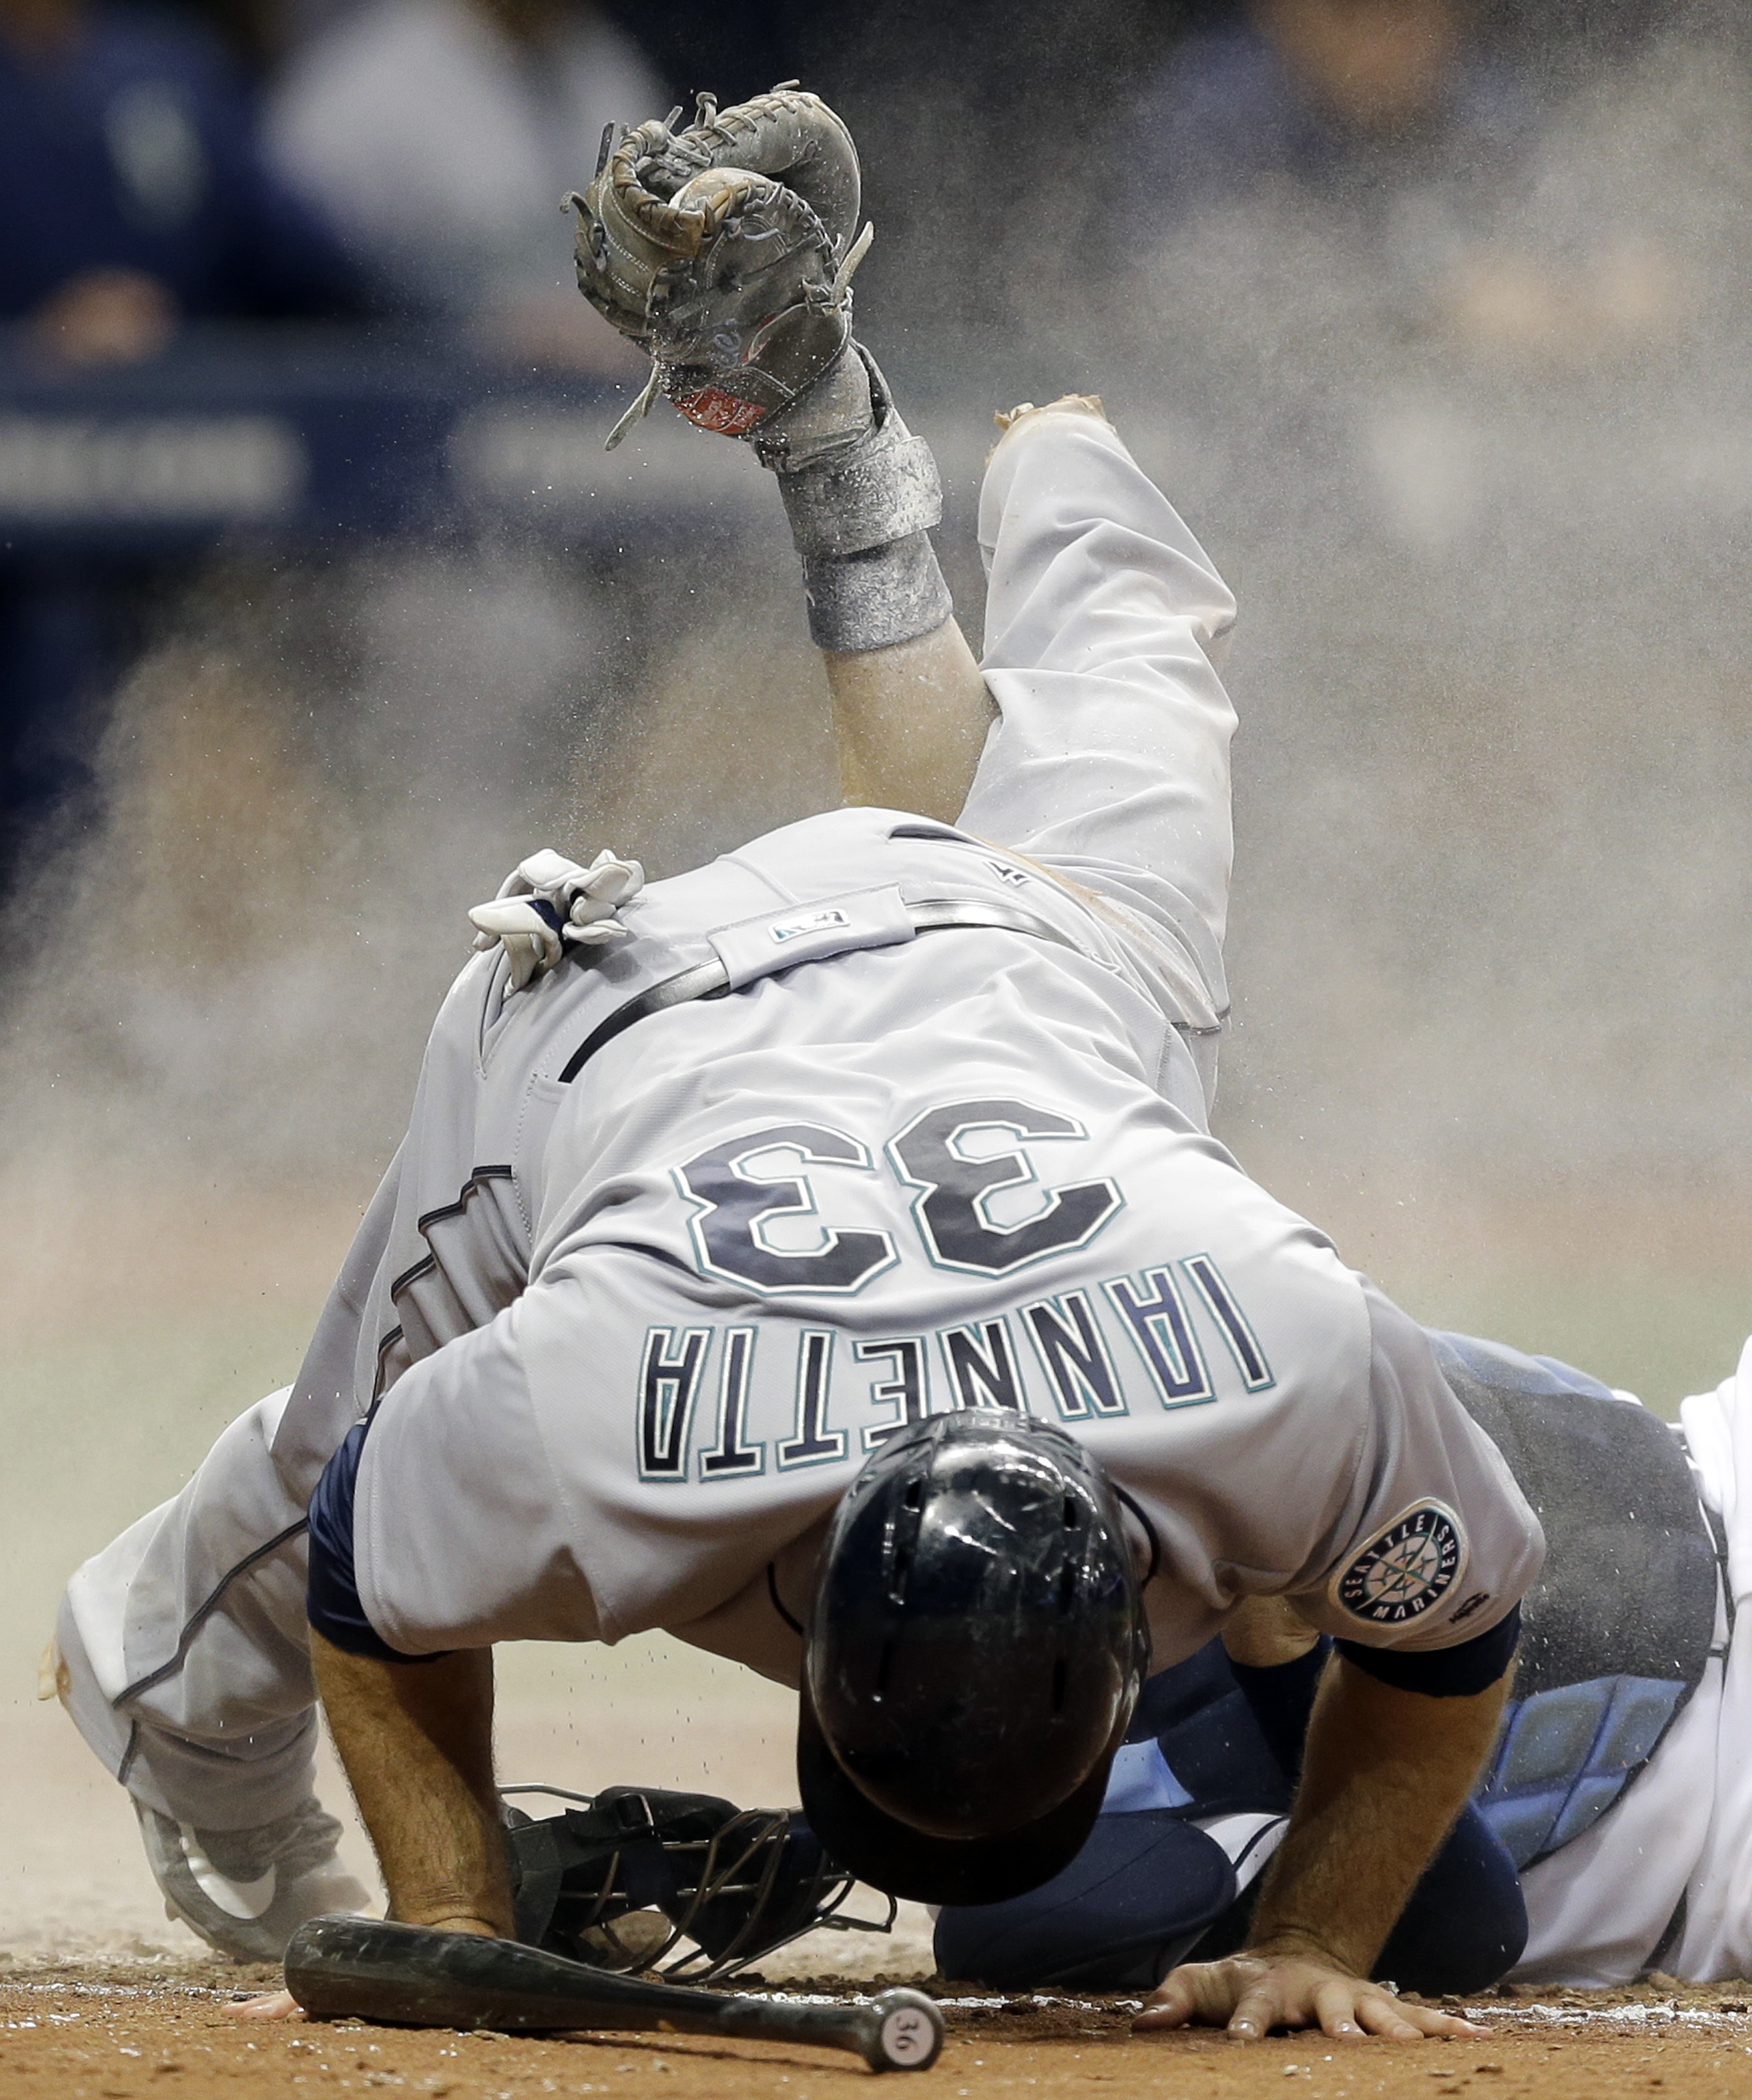 Seattle Mariners' Chris Iannetta knocks over Tampa Bay Rays catcher Curt Casali after being tagged out at home plate trying to score for third base on a fly out by Shawn O'Malley during the seventh inning of a baseball game Thursday, June 16, 2016, in St.